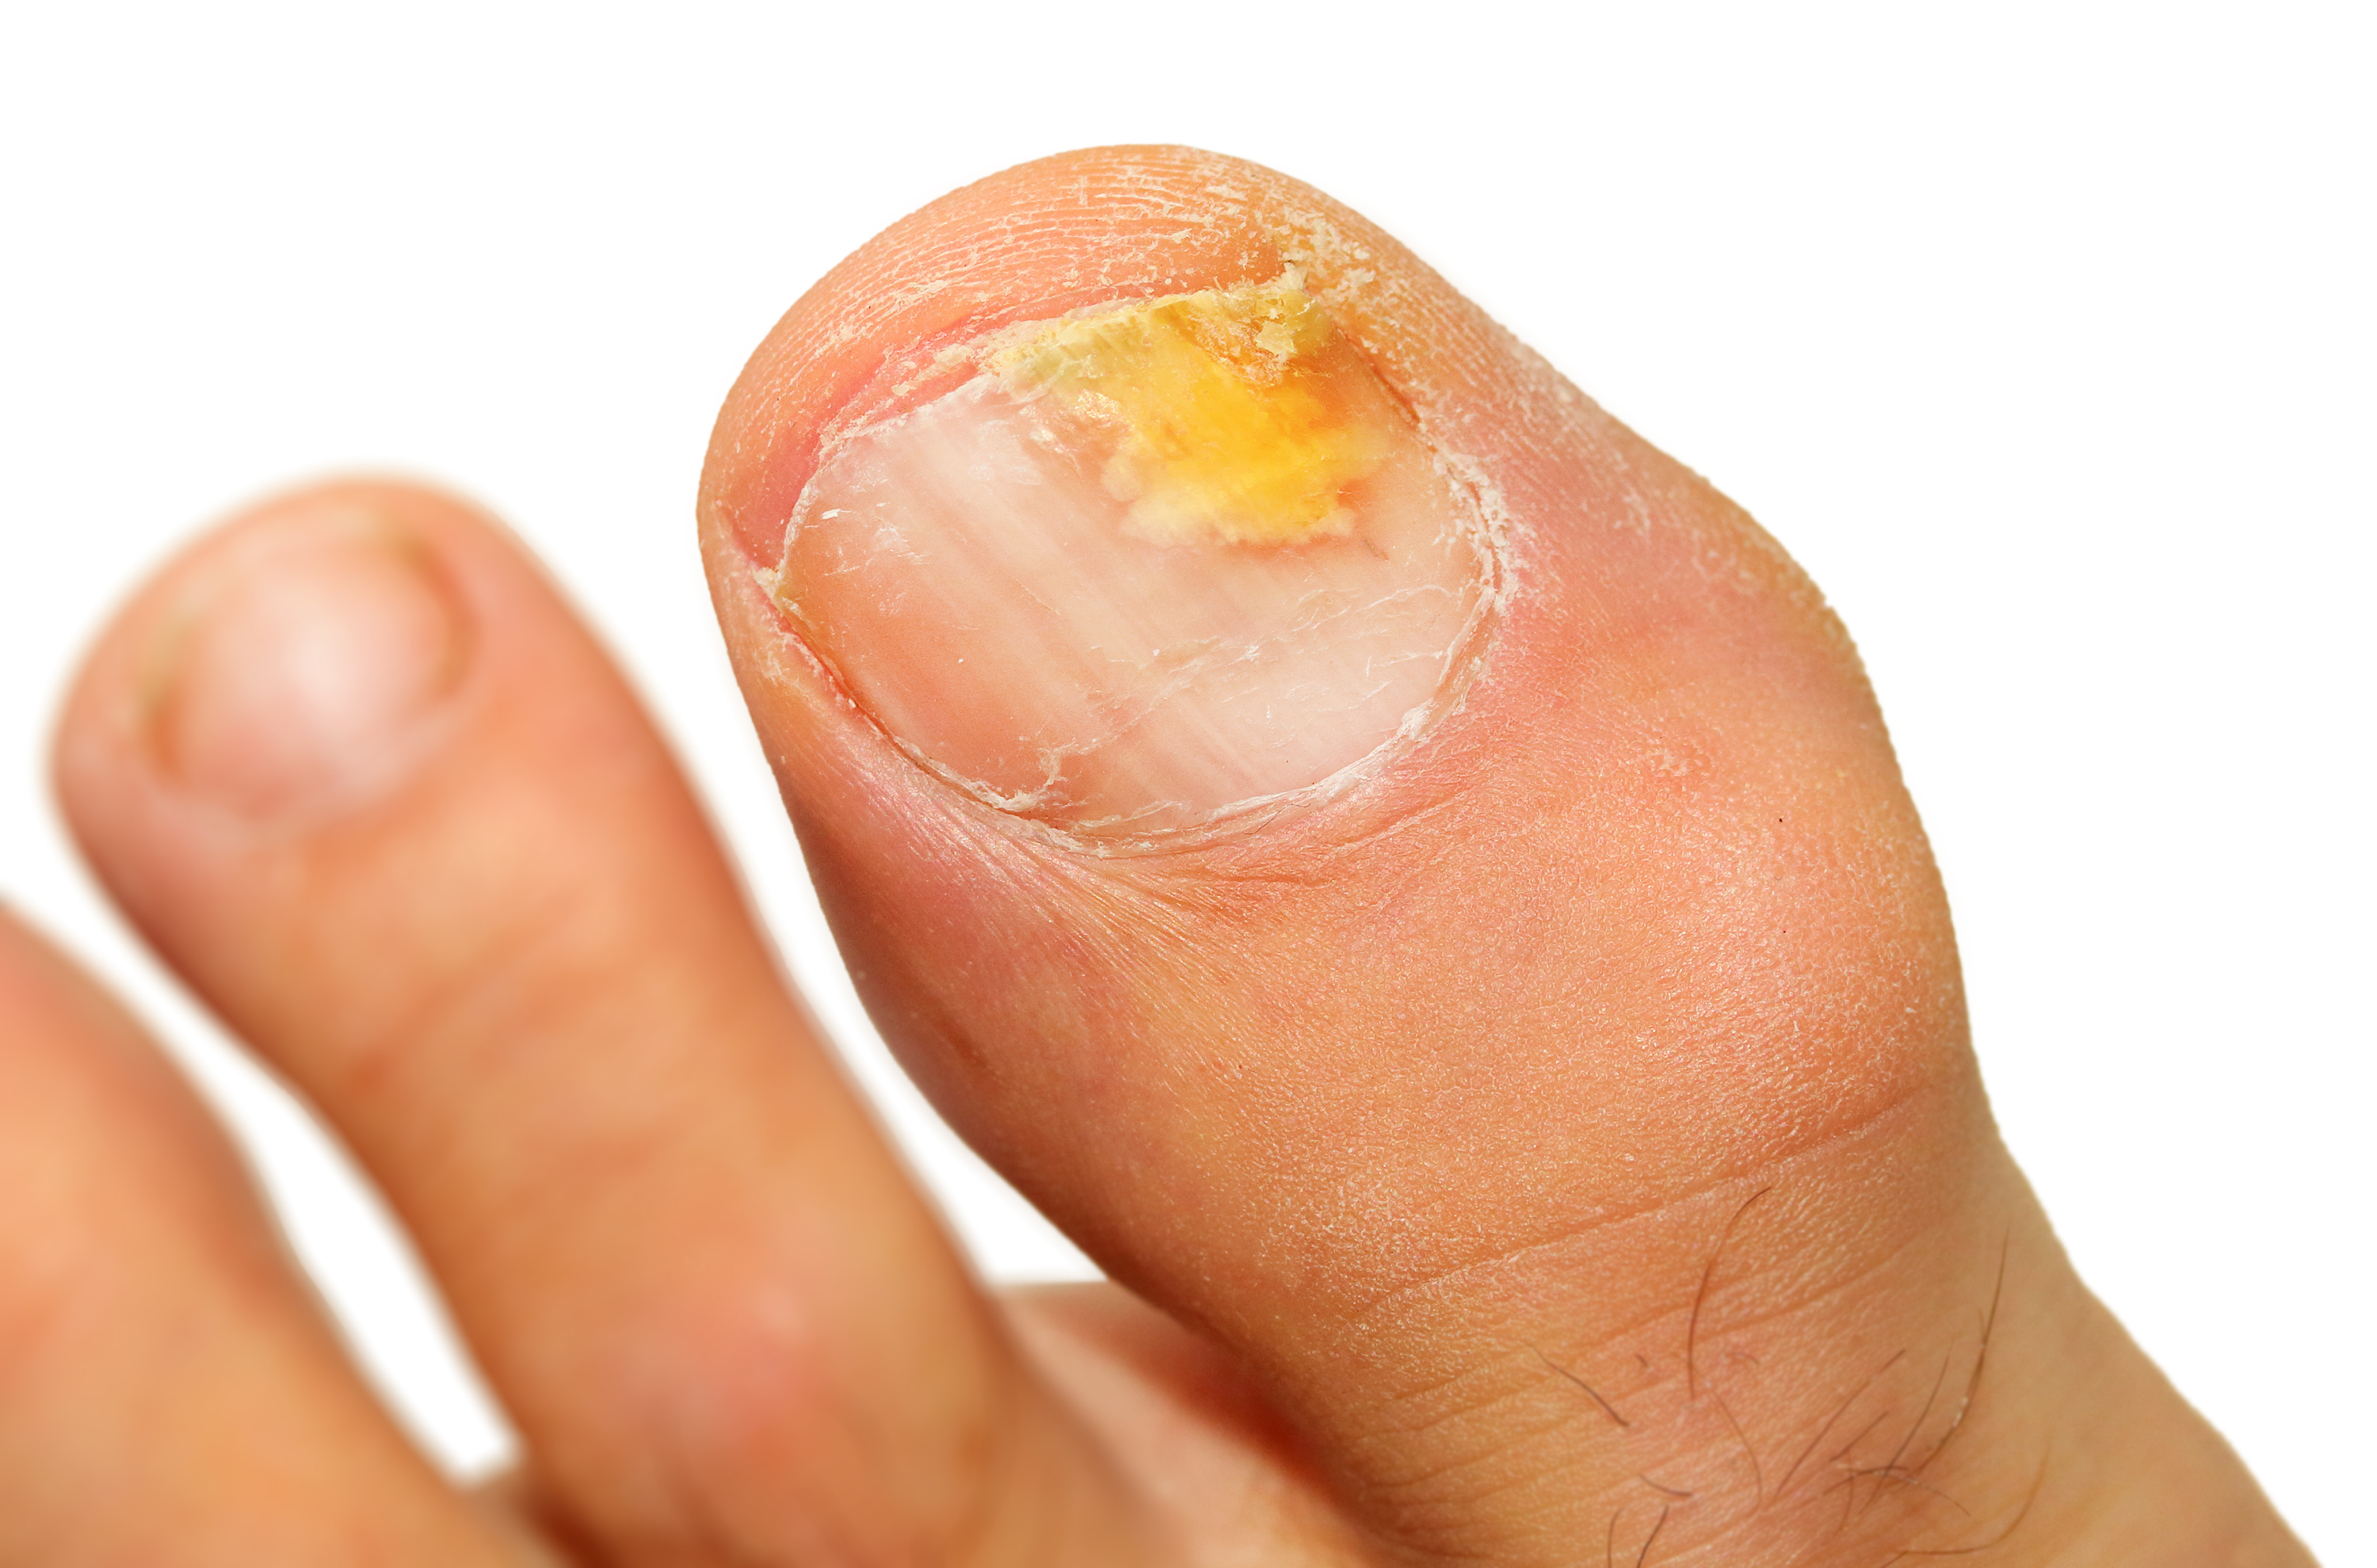 fungal toenail - Fungal Nails and Laser Treatment